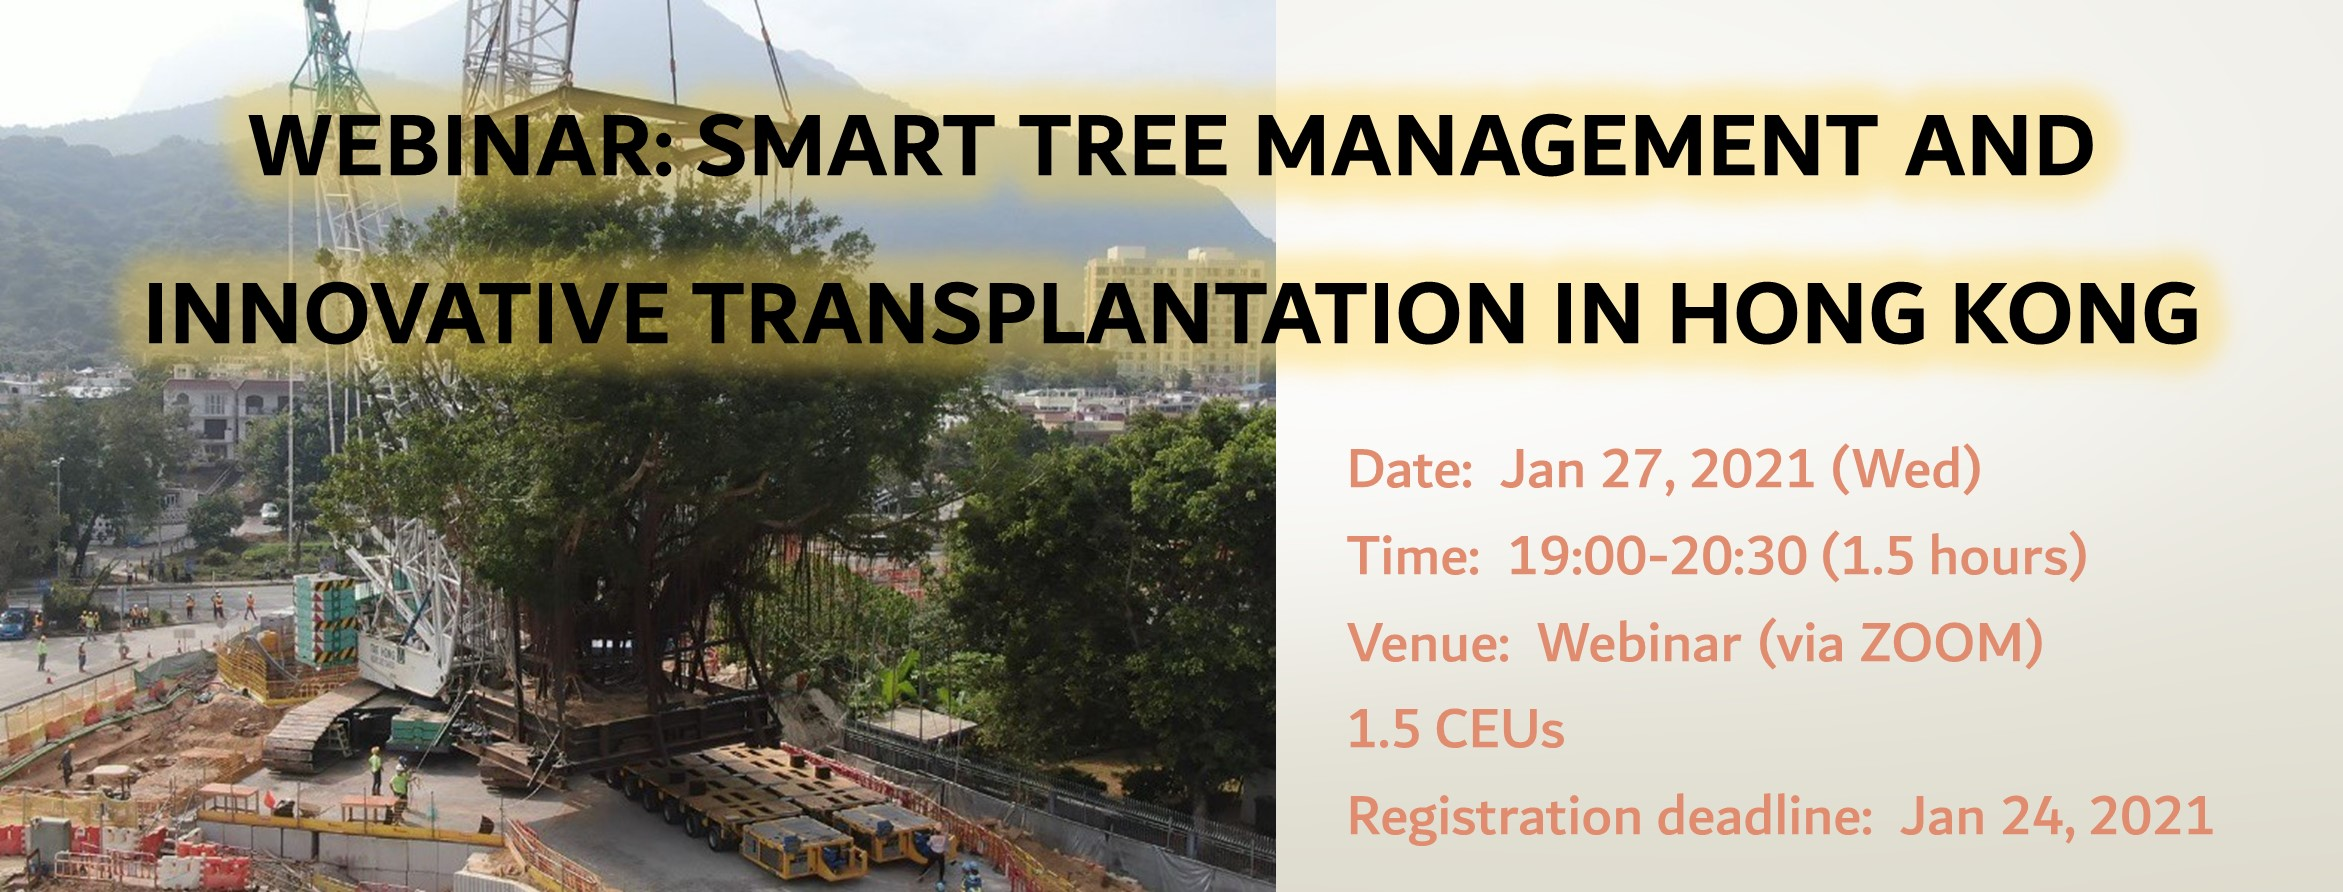 Webinar: Smart Tree Management and Innovative Transplantation in Hong Kong on Jan 27